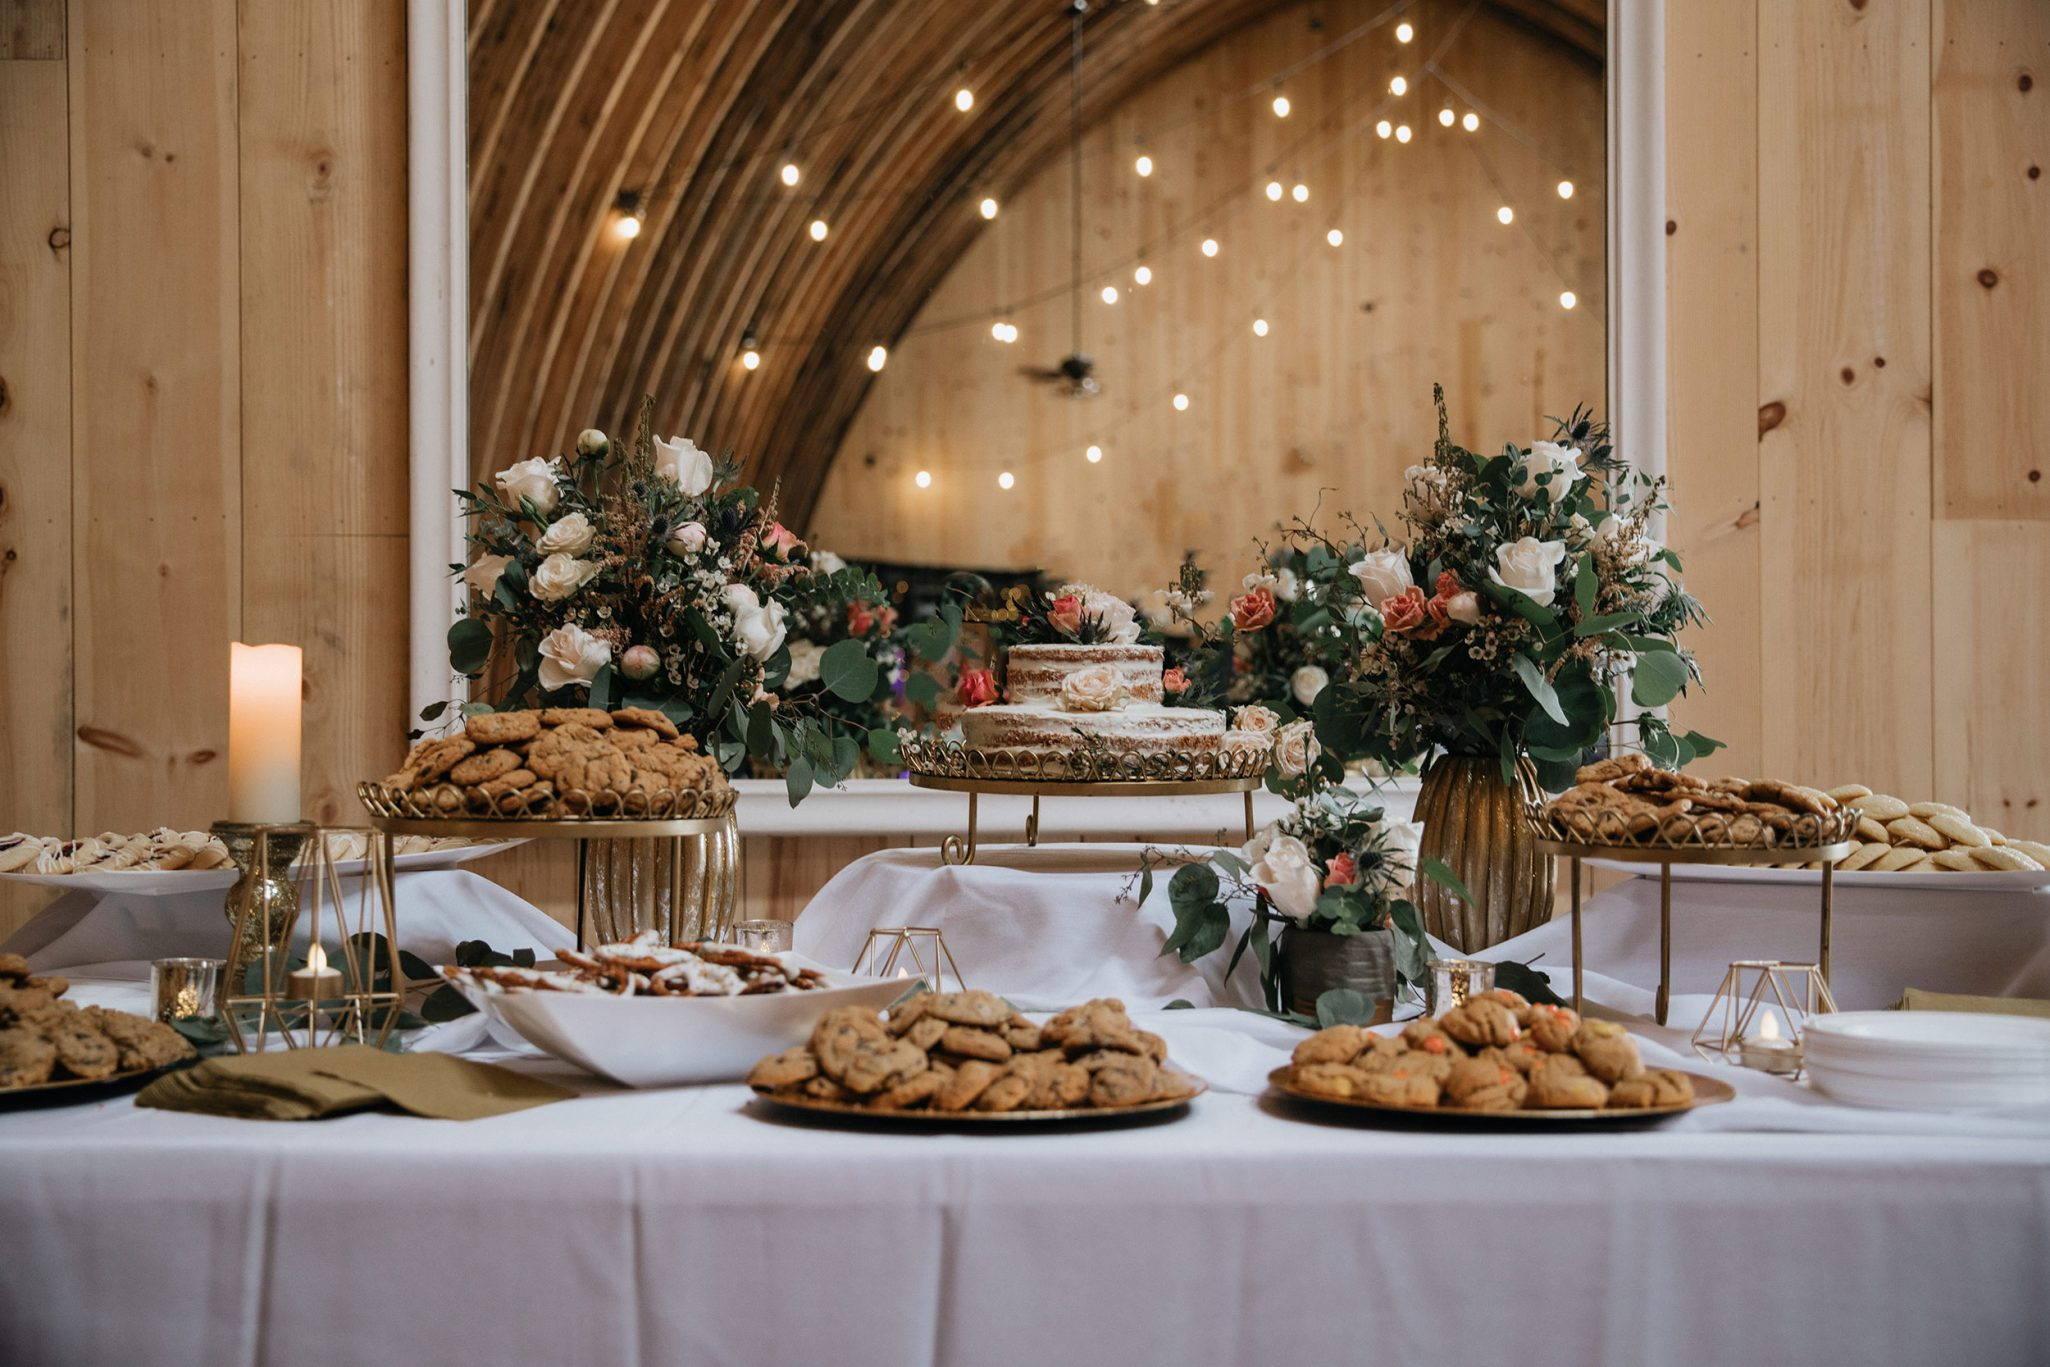 Dessert table with cookies & cake - Durango Weddings Magazine